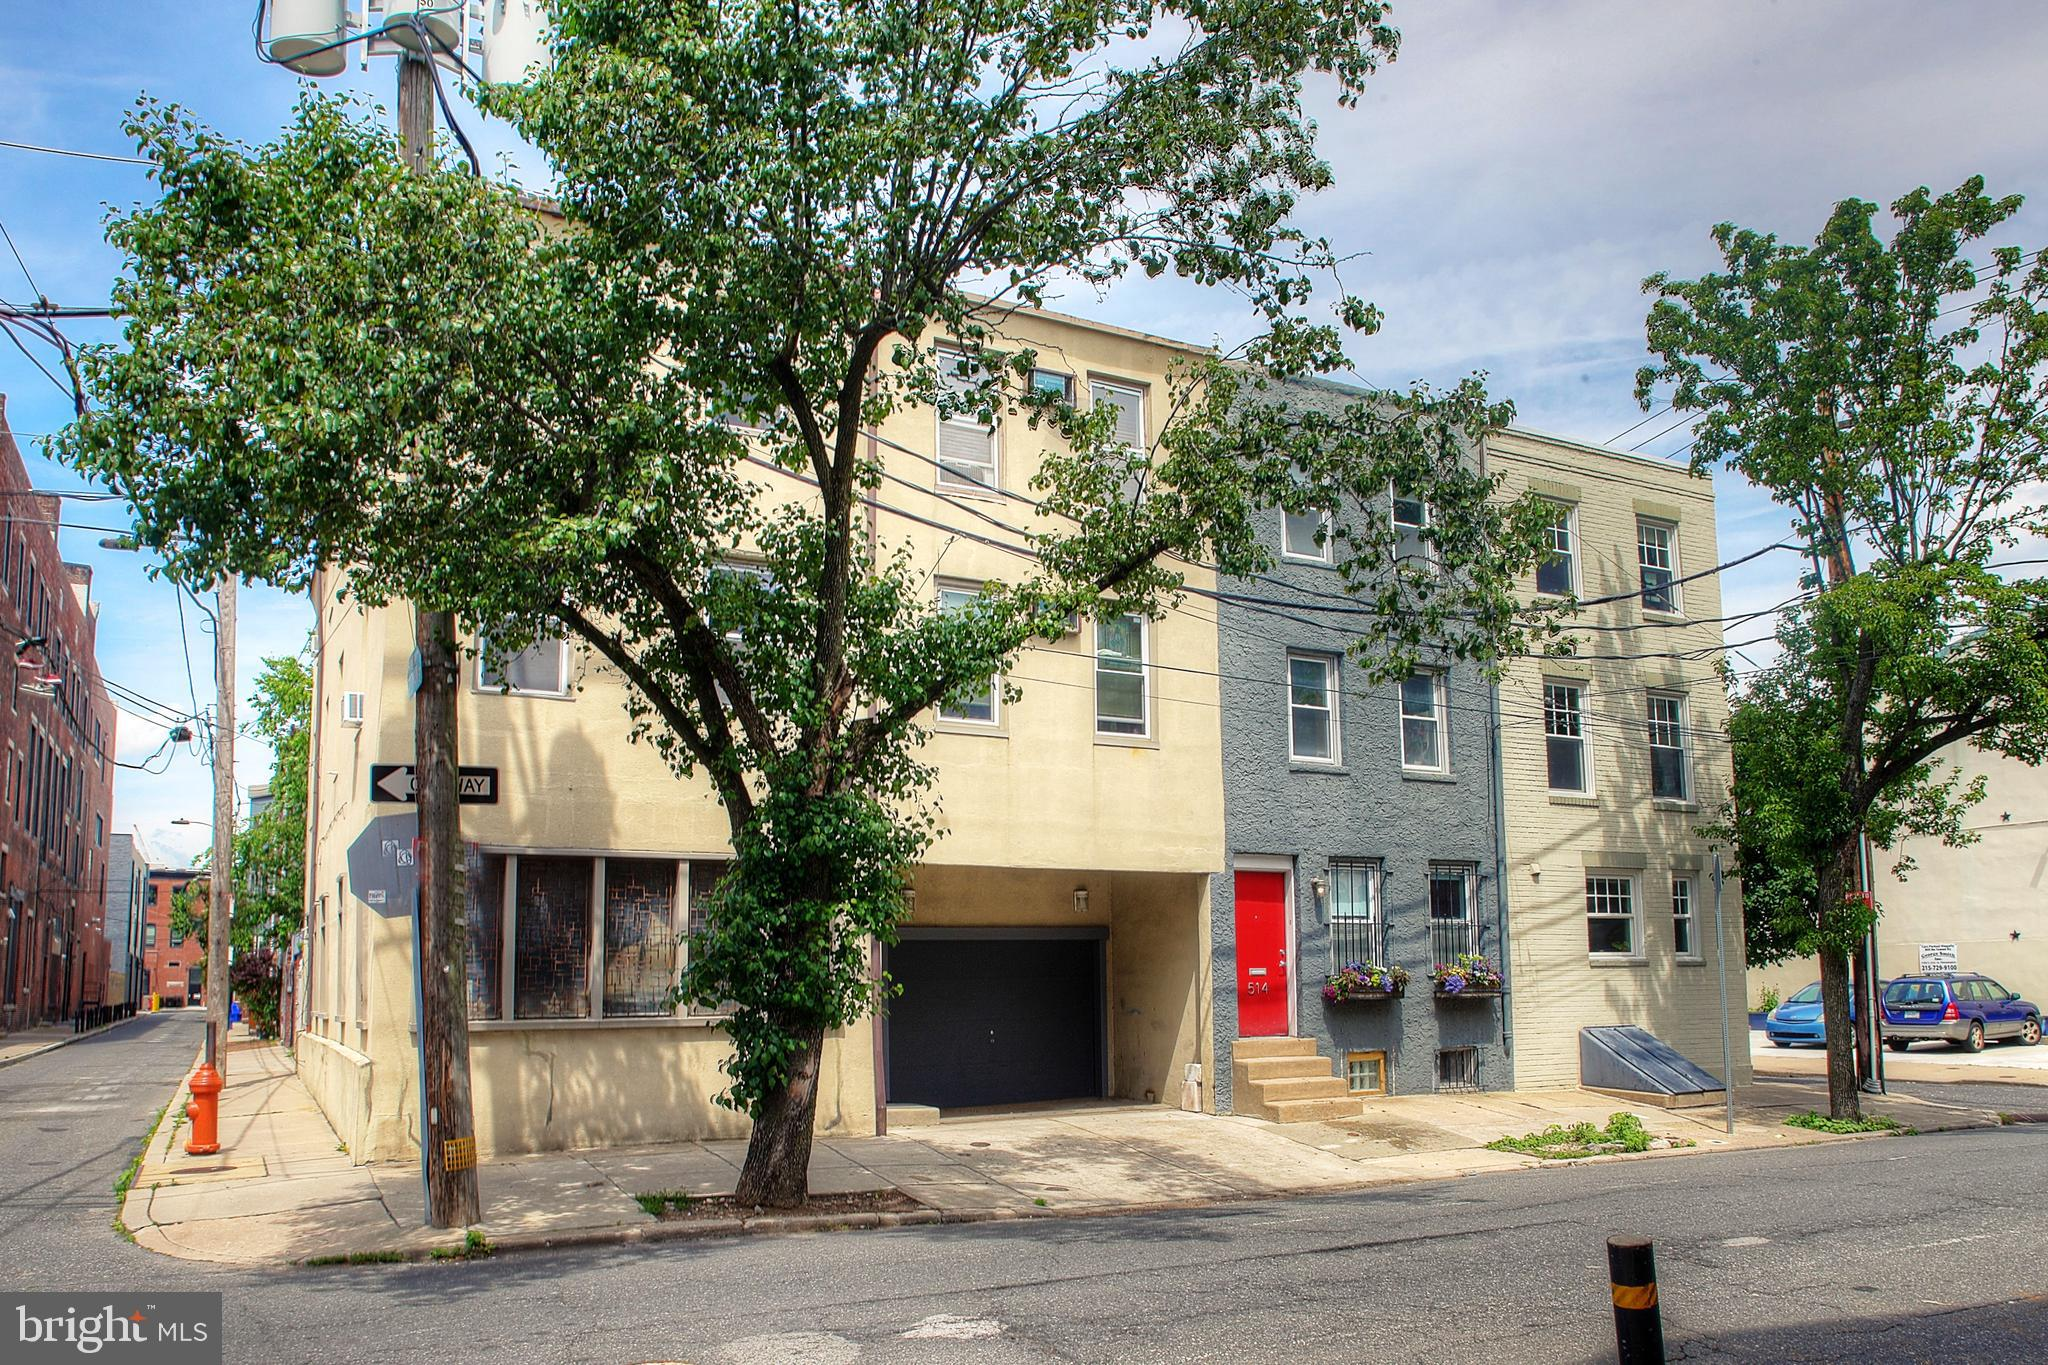 Great Development Opportunity for either single or multi-family!!  This is a 3-lot parcel on the border between the Fitler and Rittenhouse Square neighborhoods.  It includes 516 and 518 S. 21st Street as well as the connecting 16' x 30' lot at 2105 Rodman Street.  The total parcel on the corner of 21st and Rodman has curb-cut access to both streets.  The property at 518 S. 21st Street is a single-family home with 4 bedrooms, 4 bathrooms, a kitchen/dining great room, a large wall of windows, 9 ft. high ceiling living room, a first-floor sun room with 2-part full bathroom, and a beautifully landscaped patio and garden.  It is a corner property with many south facing windows, as well as windows facing north, east and west.  It has central heat and air conditioning.  There is a full kitchen on the first floor and a kitchenette/bar on the third floor.  It is a full lot 3-story house plus a full basement.  It has large scale rooms with antique architectural elements, moldings, a custom fireplace mantle in the dining room with a wood stove insert, cedar lined storage closet and stained and leaded glass doors & windows.  The two bedrooms on the third floor have en-suite bathrooms installed in 2016.  All of the rooms in the home have at least two outdoor views.  The property at 516 S. 21st has a garage and driveway on the first level and a two-story rental unit above.  It has two bedrooms, one bath, full kitchen, dining room and living room, and a balcony overlooking the back patio.  This unit is tenant occupied, but will be delivered vacant at settlement.  The lot at 2105 Rodman opens to the landscaped patio and two additional parking spaces.  The home could be easily updated or completely renovated into your own style spectacular home with over 3,200 square feet, multiple parking spaces, deck and a beautiful garden patio.  The home is in both the Albert Greenfield and Chester Arthur school catchments.  The neighborhood includes some of the best shops and restaurants in the